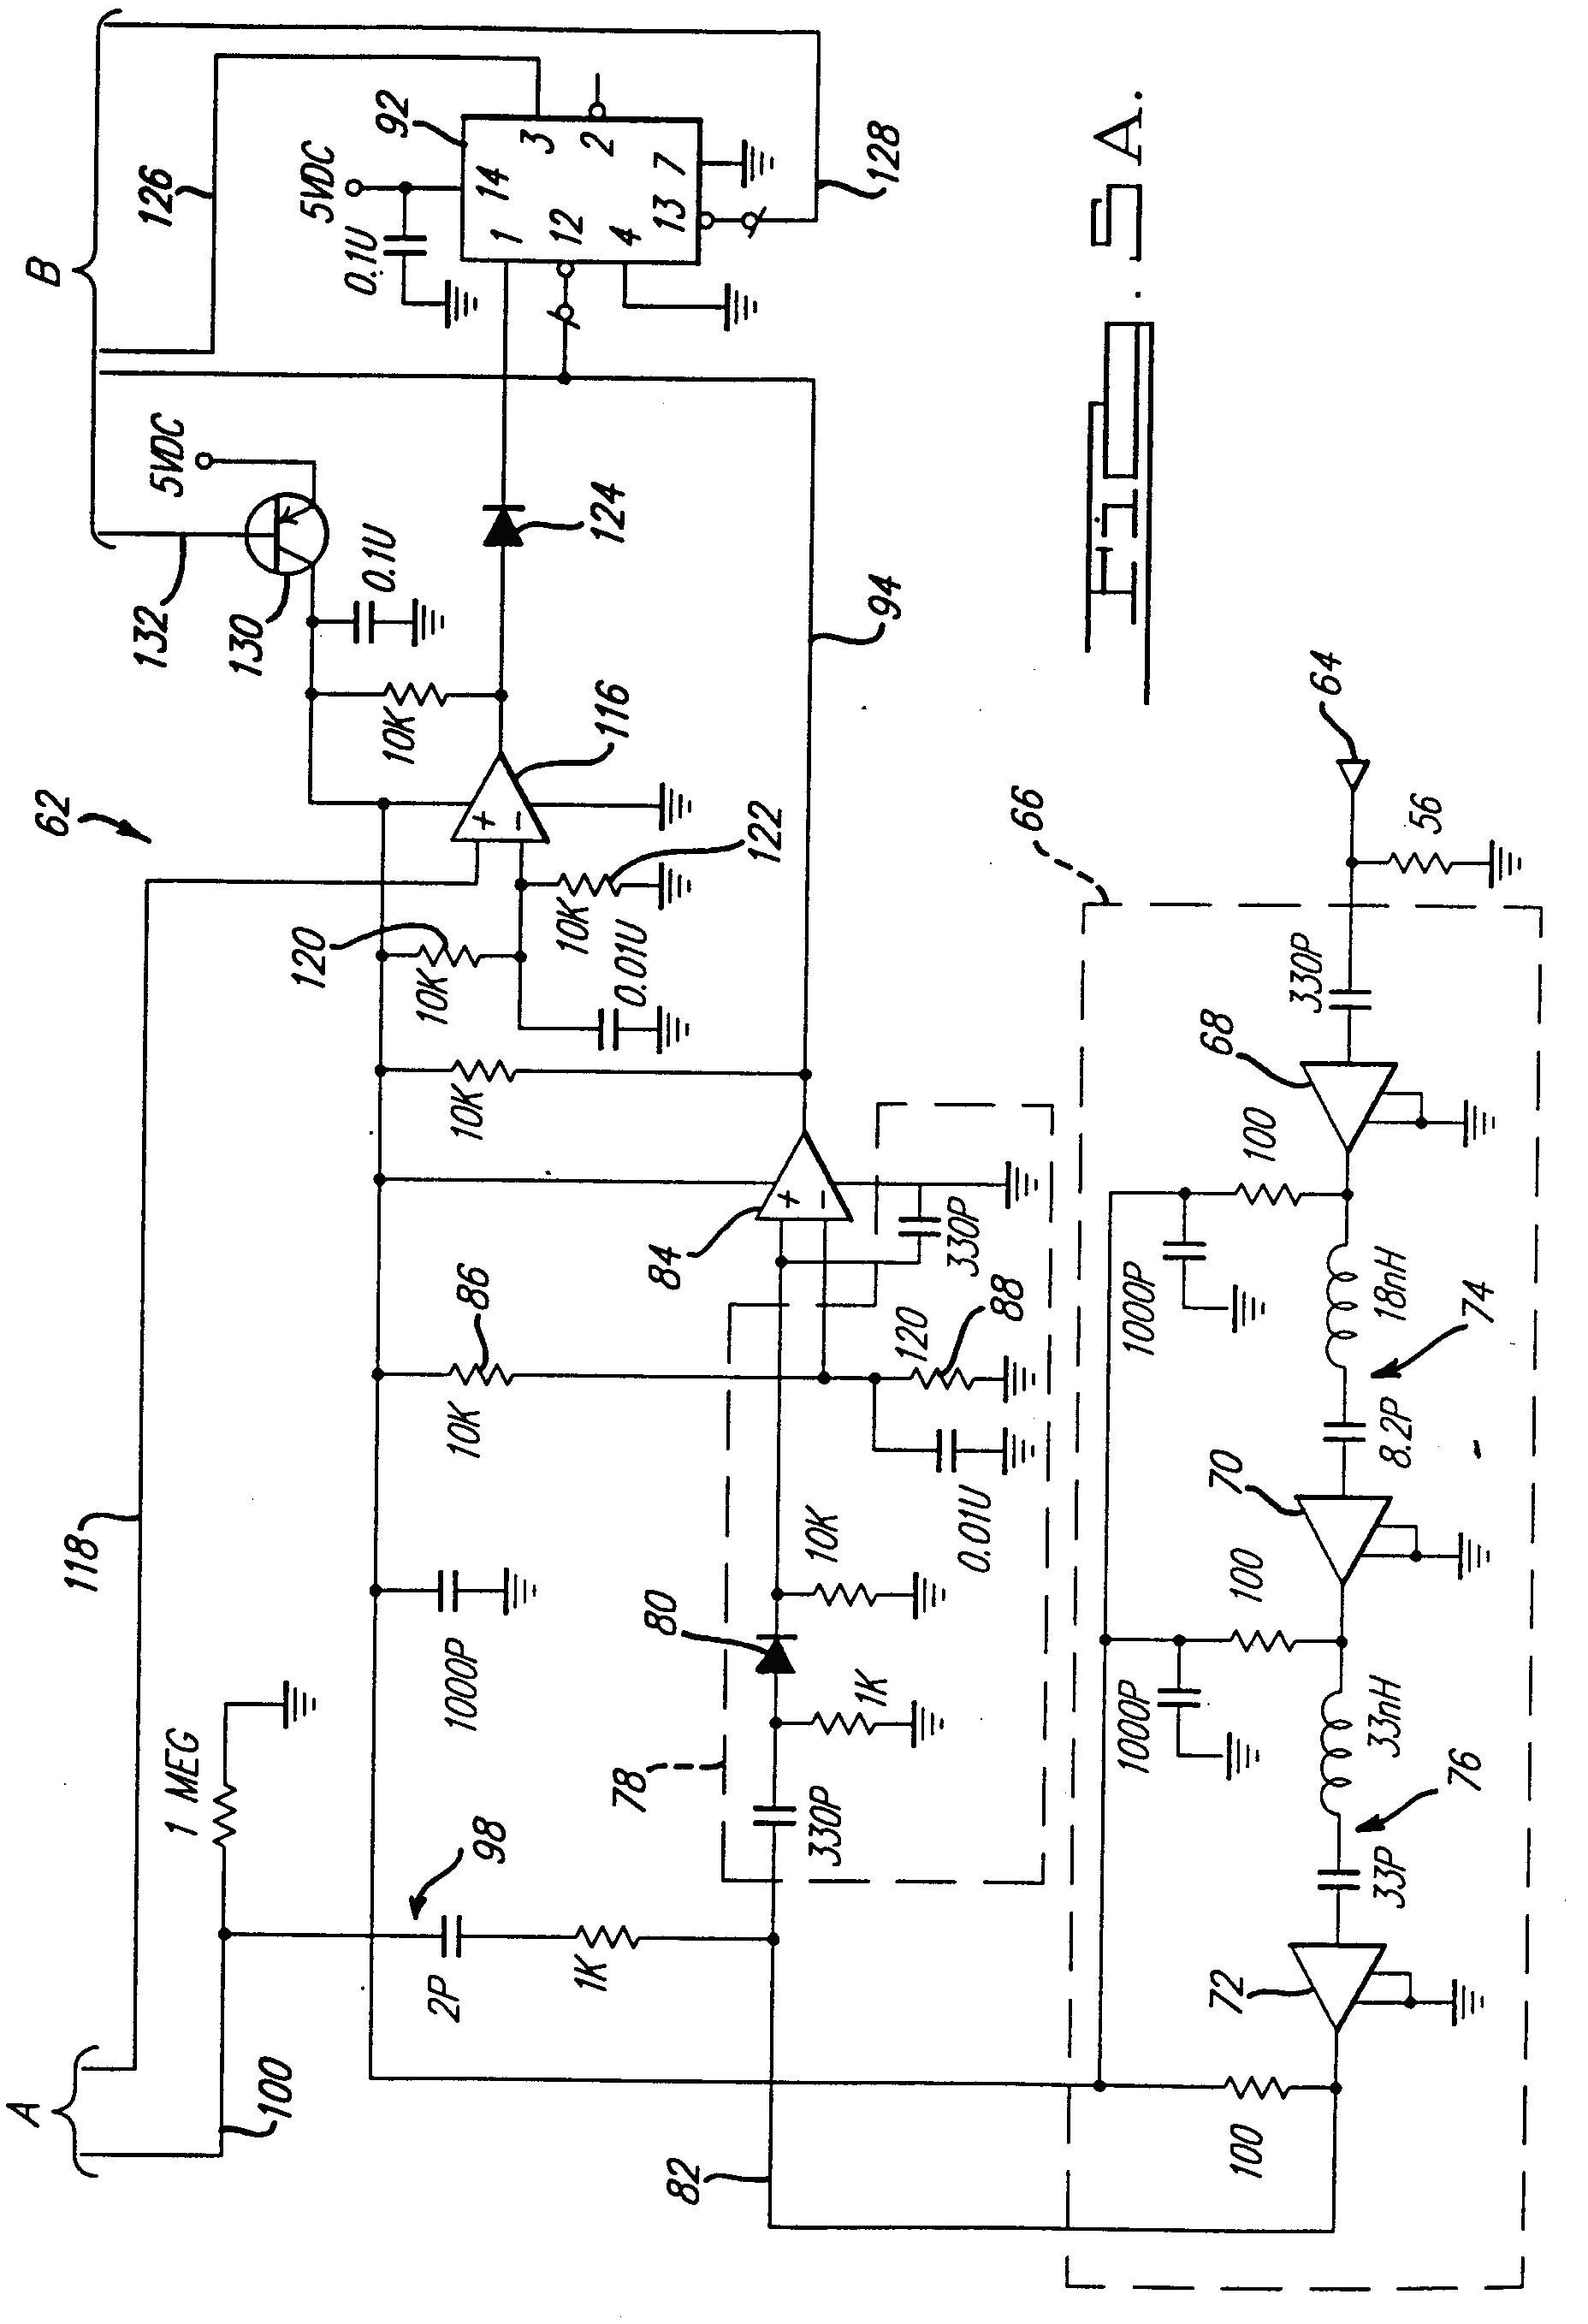 hight resolution of genie garage door opener sensor wiring diagram wiring diagram detail name genie garage door sensor